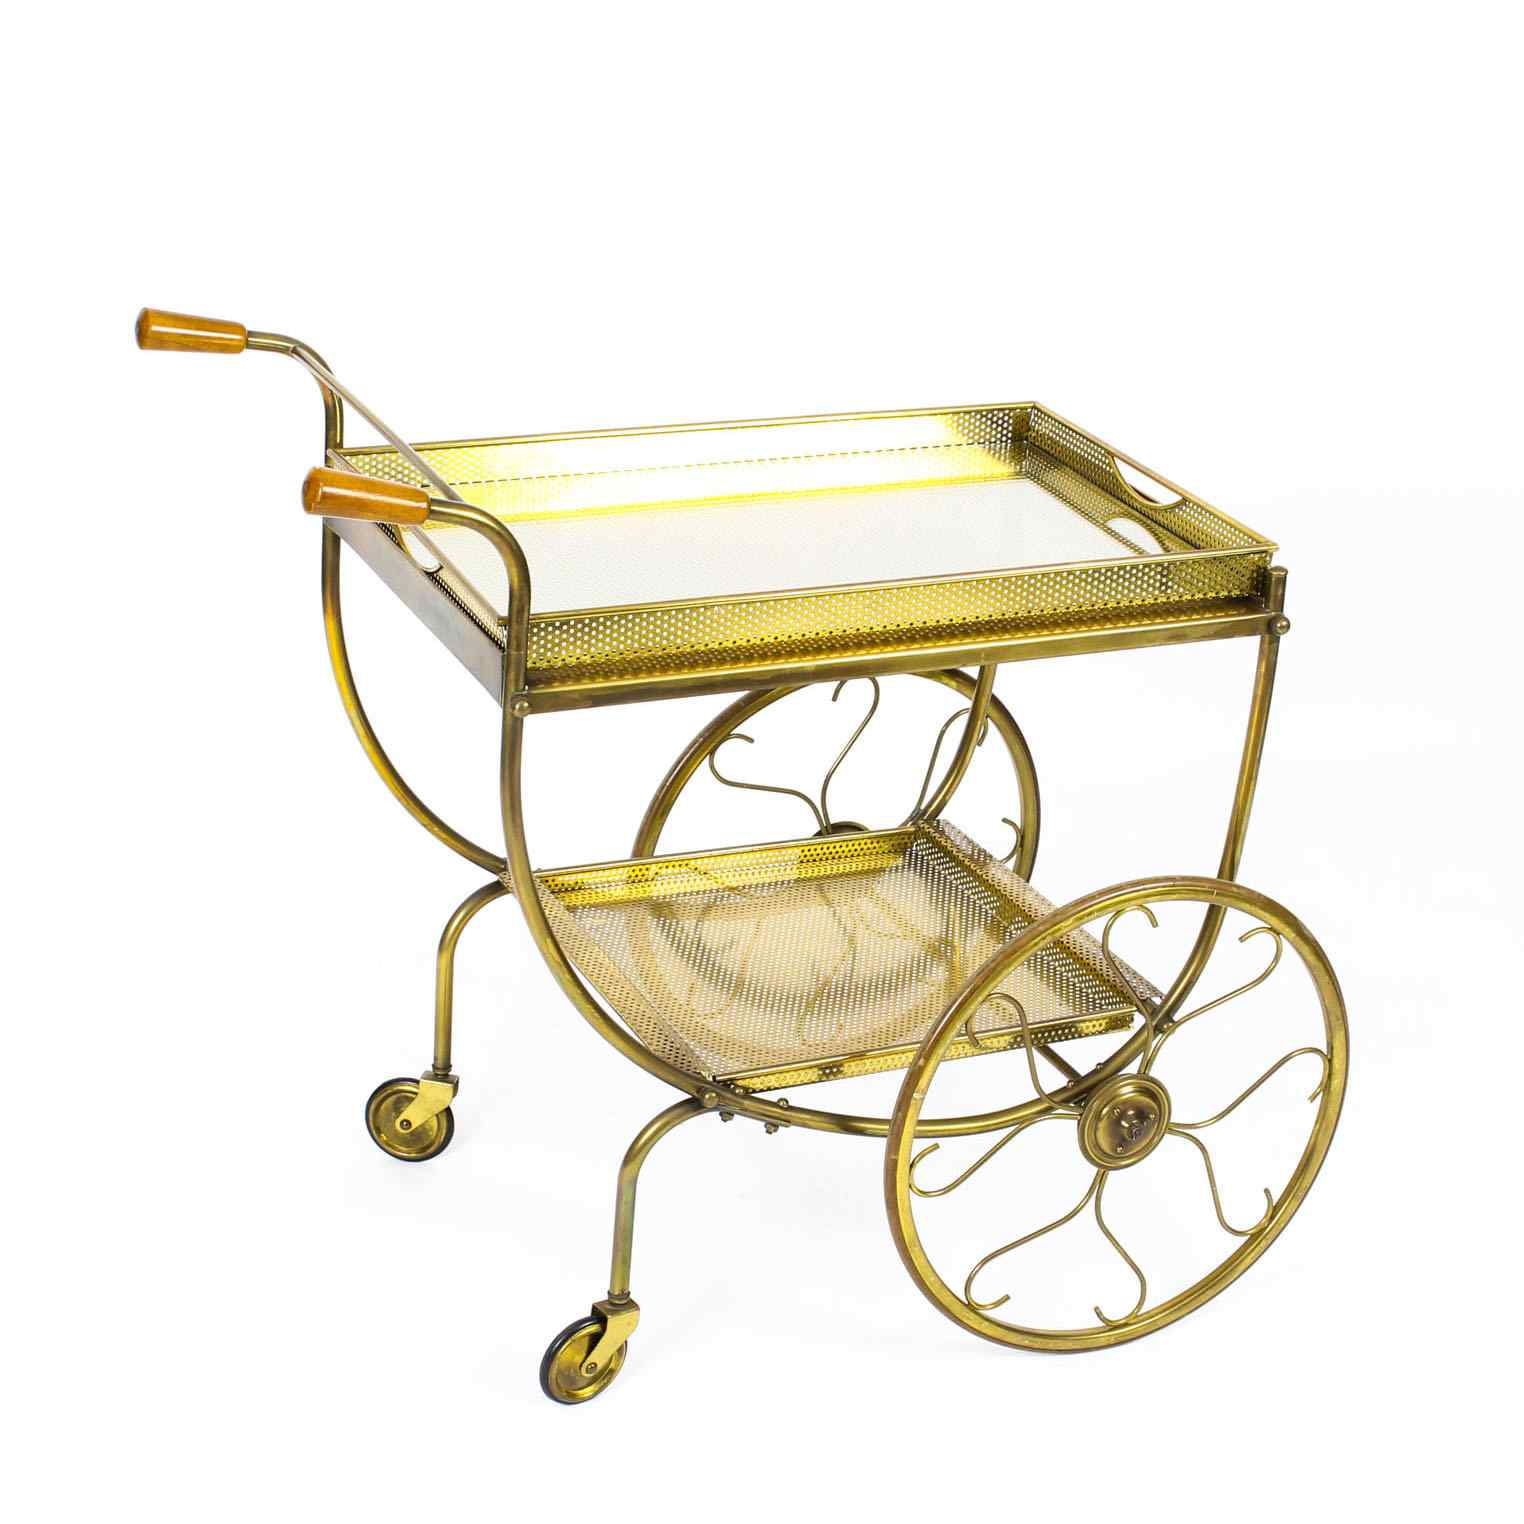 Antique French Modernist Drinks Serving Trolley Mid Century